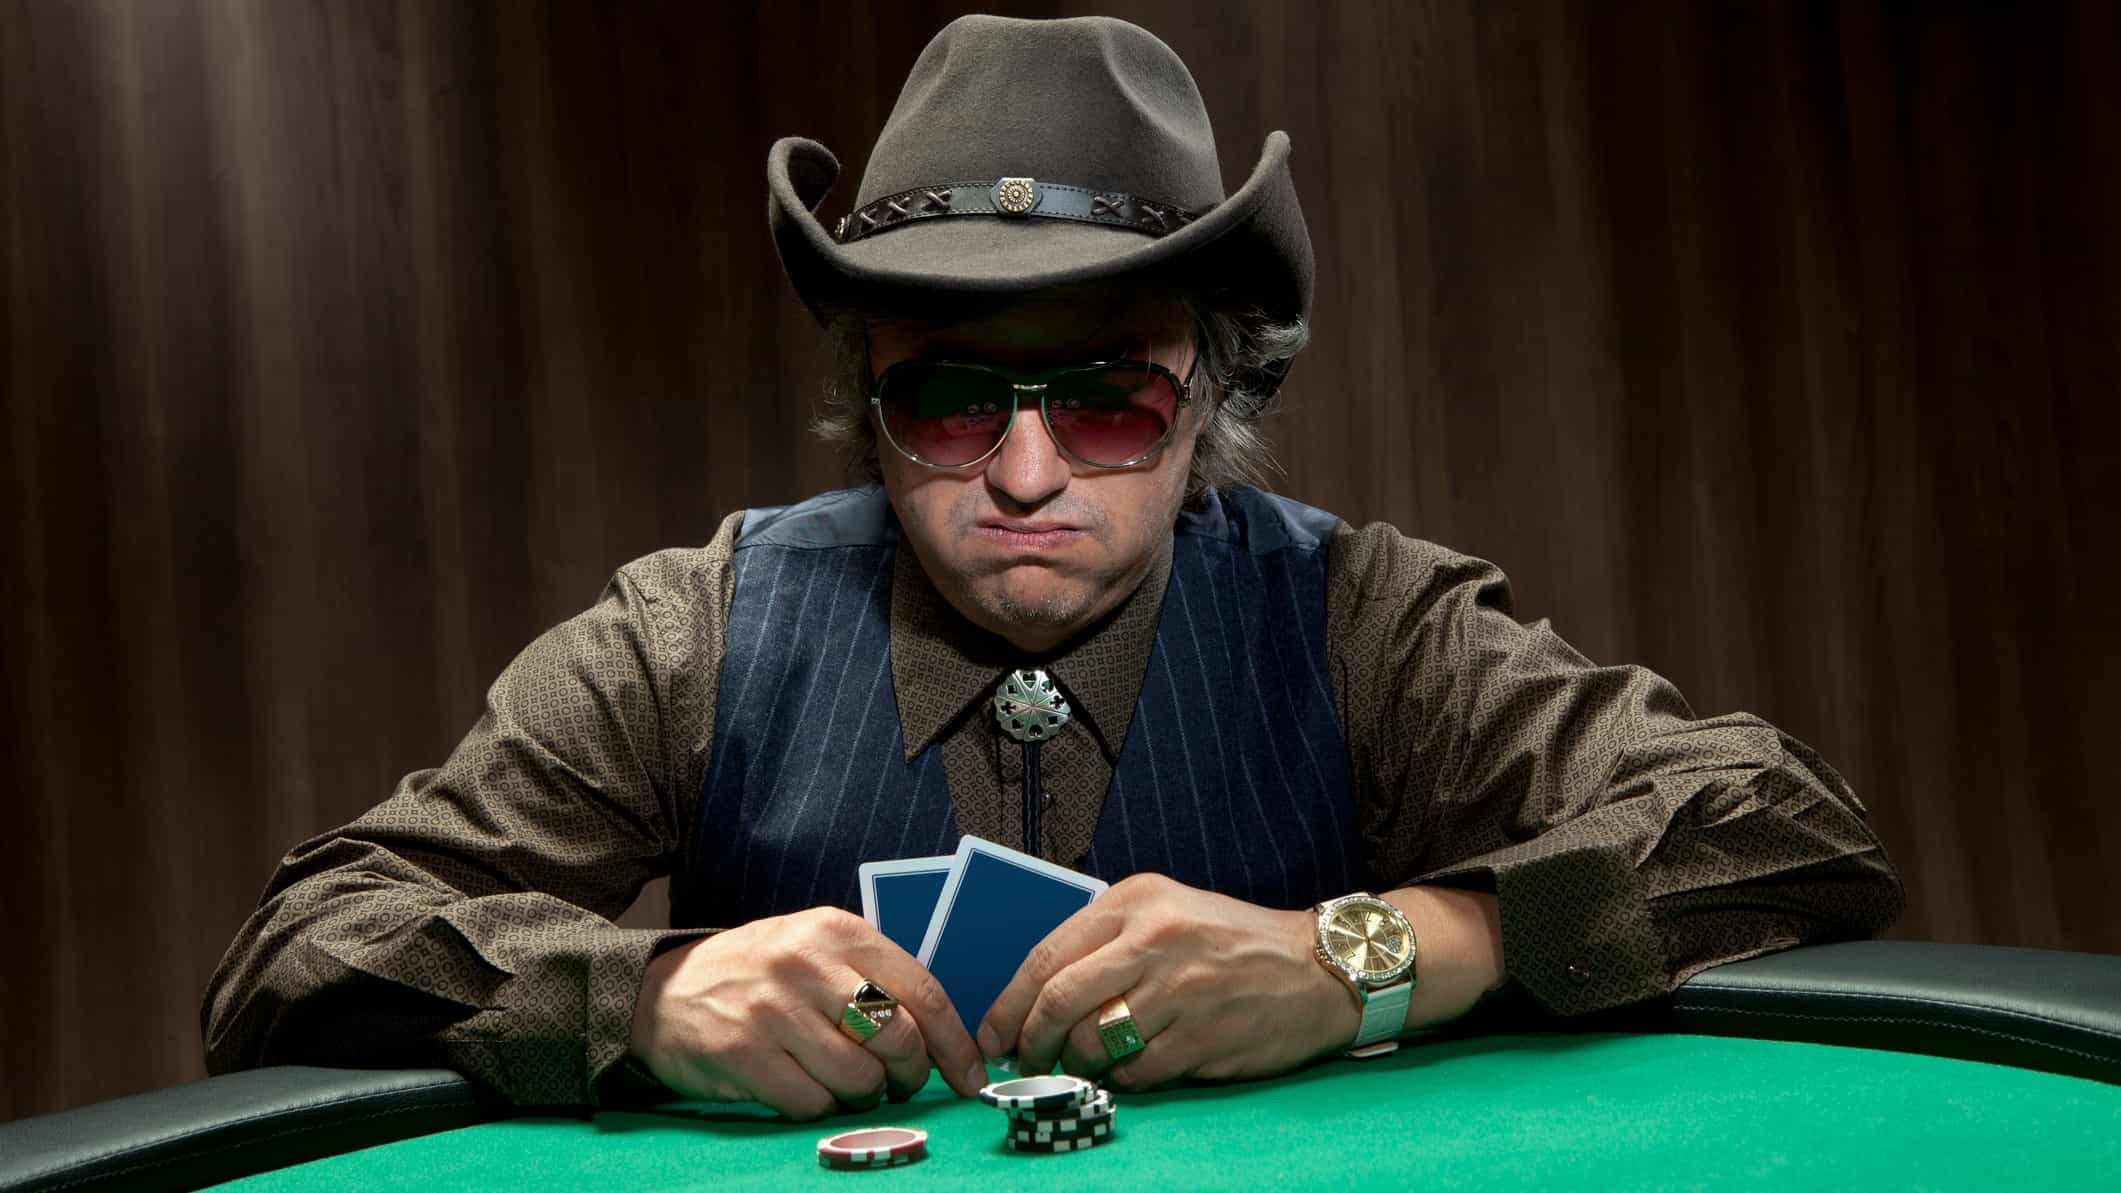 Man in hat at casino table with cards and chips looking disappointed